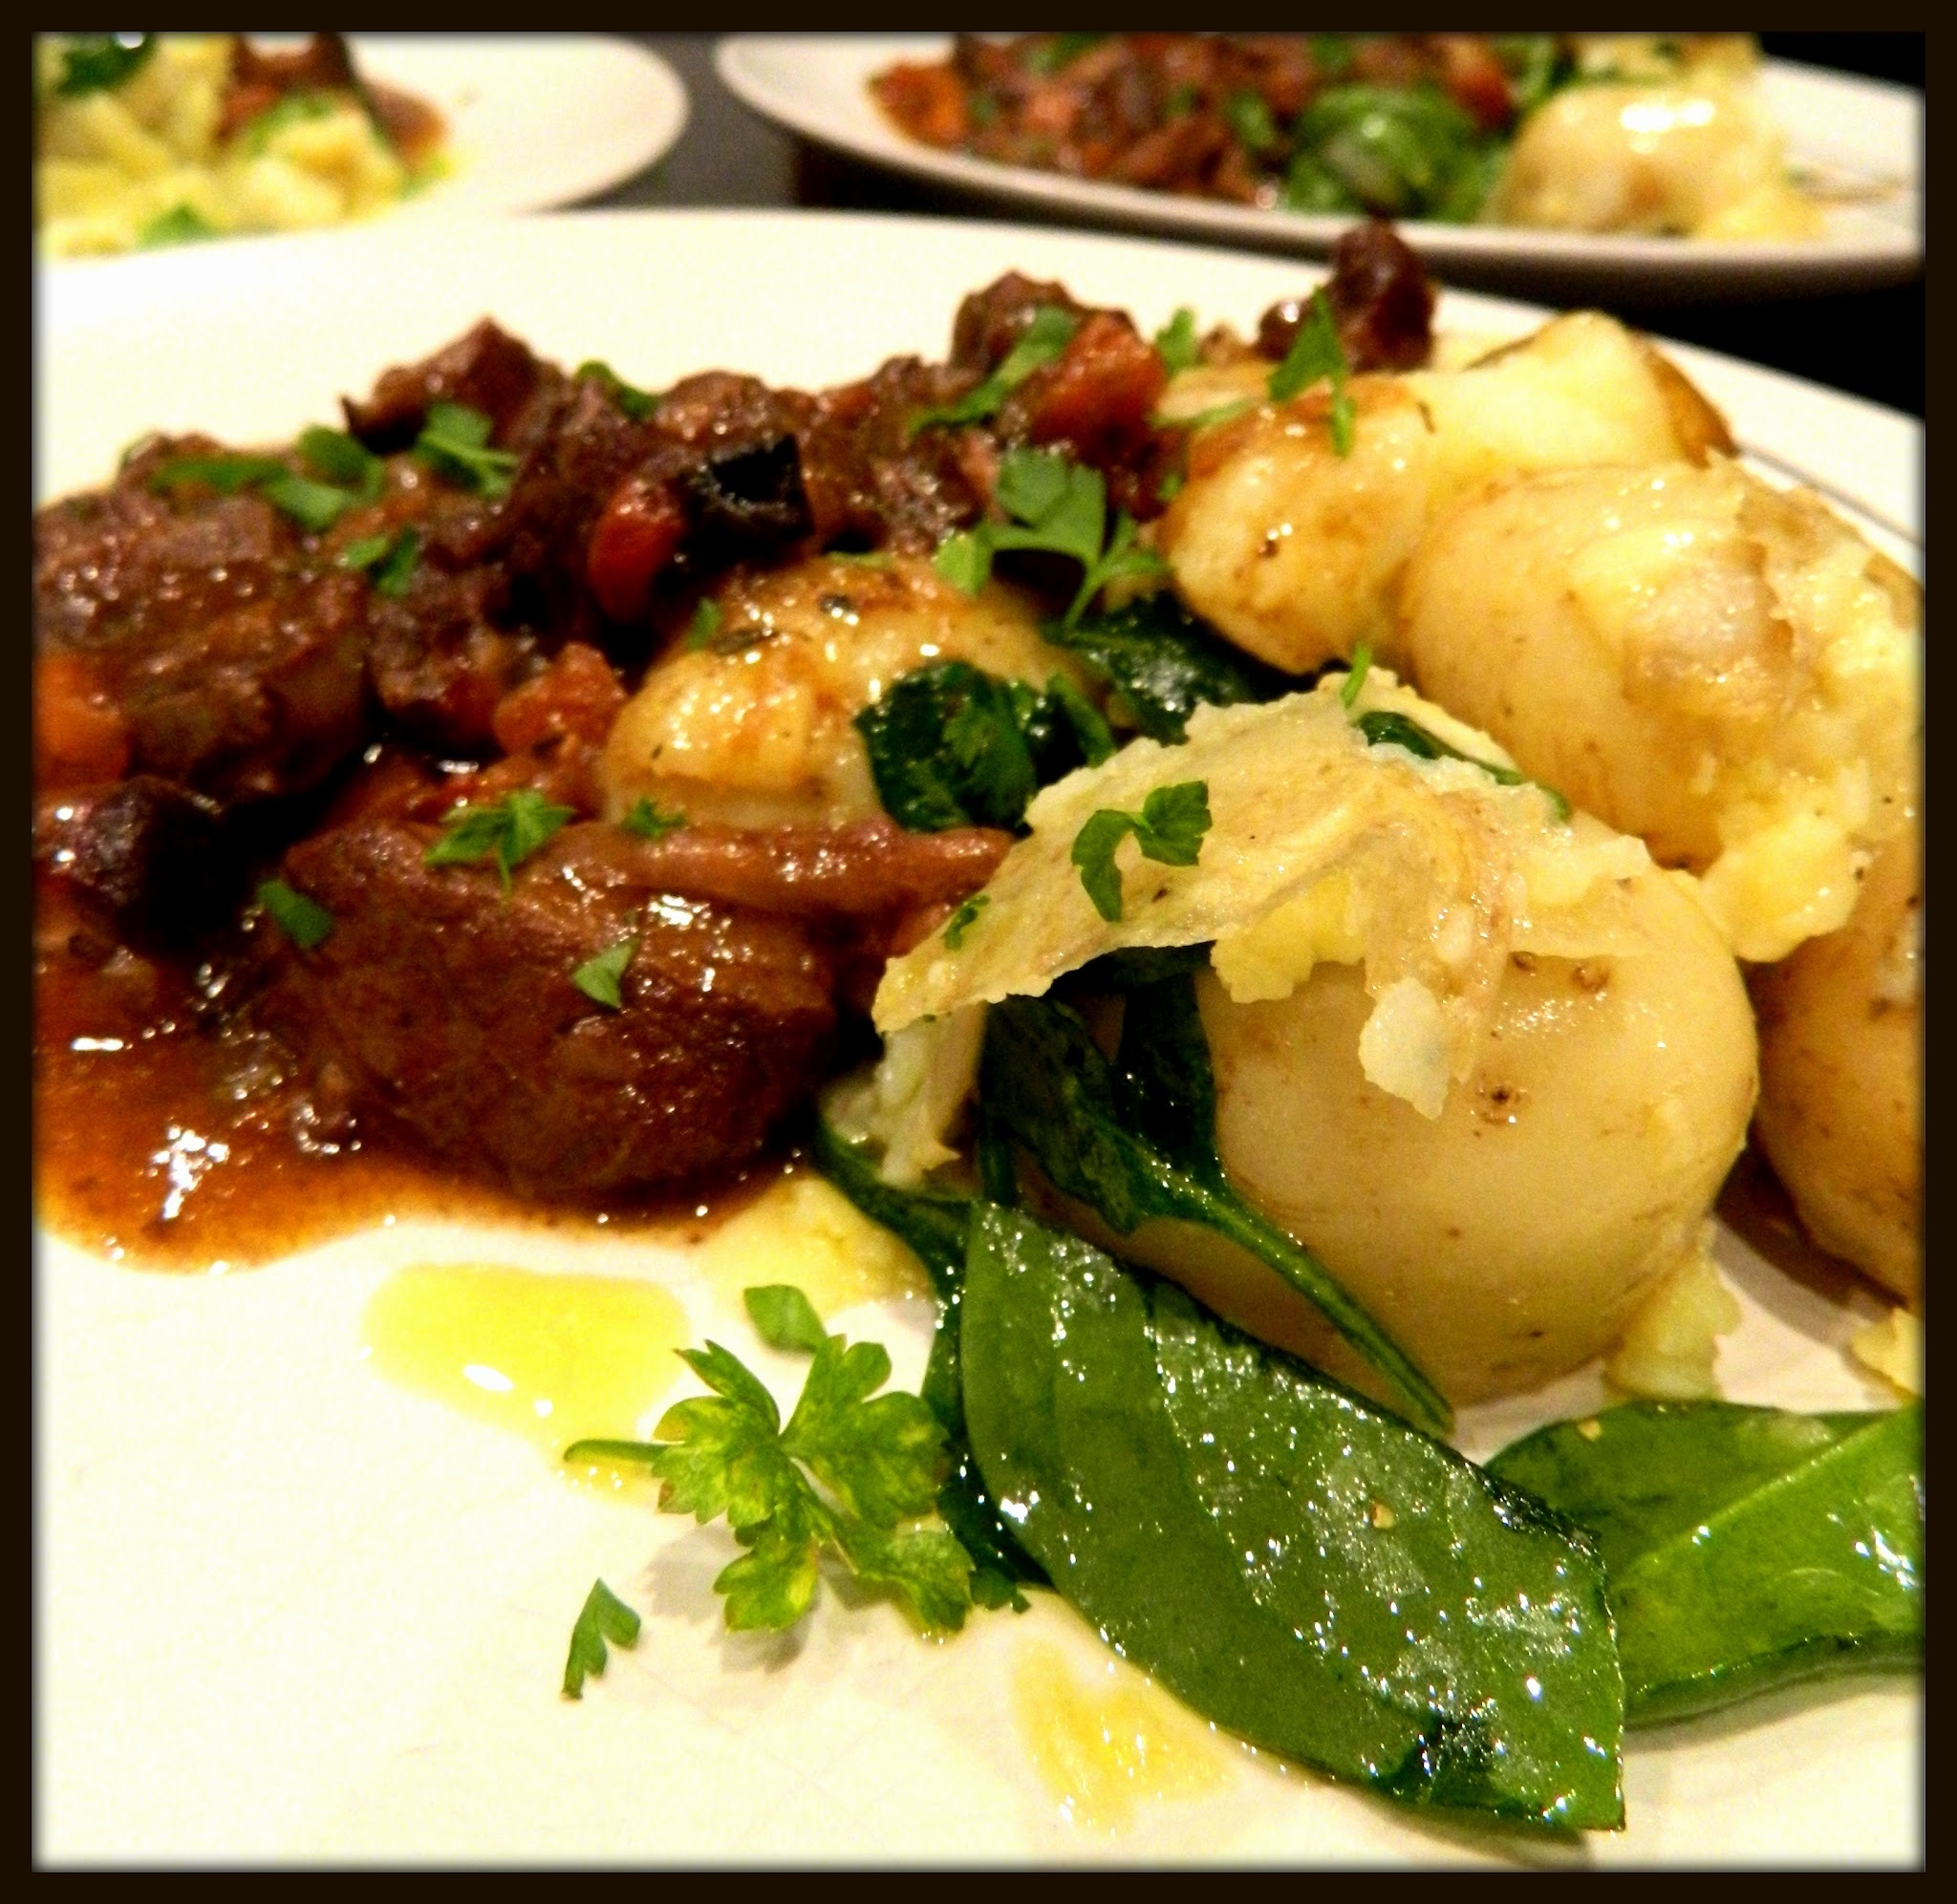 BRAISED SHIN OF BEEF WITH GARLIC POTATOES SPINACH & PARMESAN